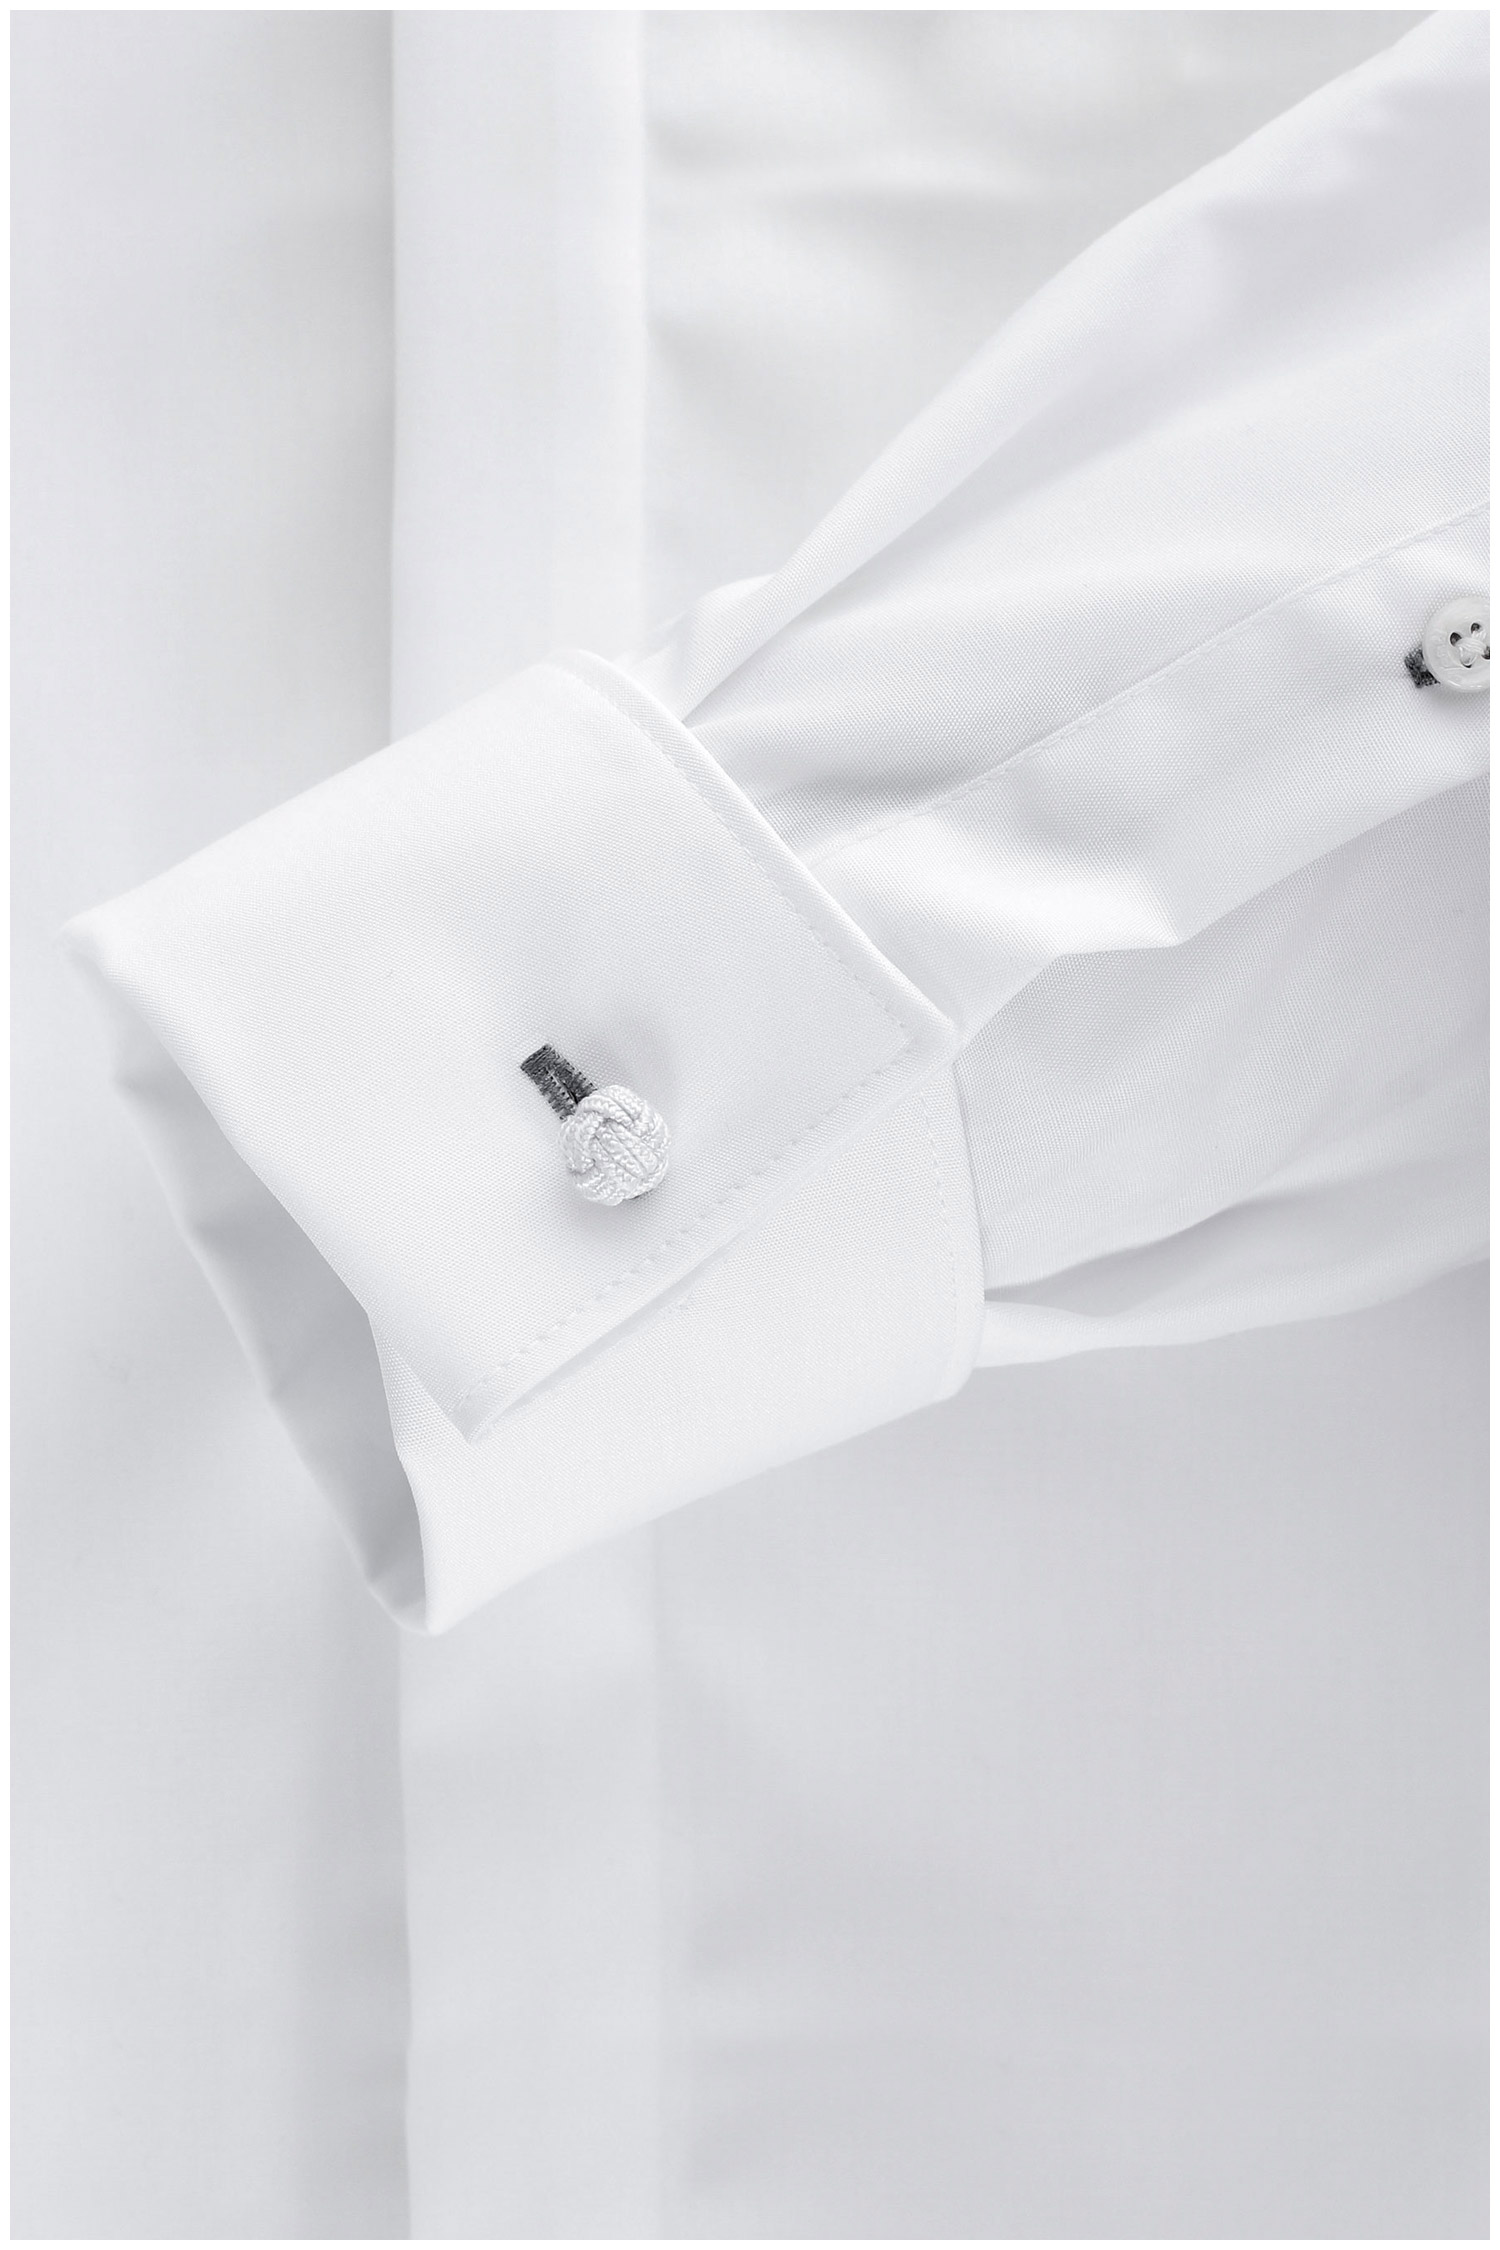 Camisas, Ceremonia, 108018, BLANCO | Zoom